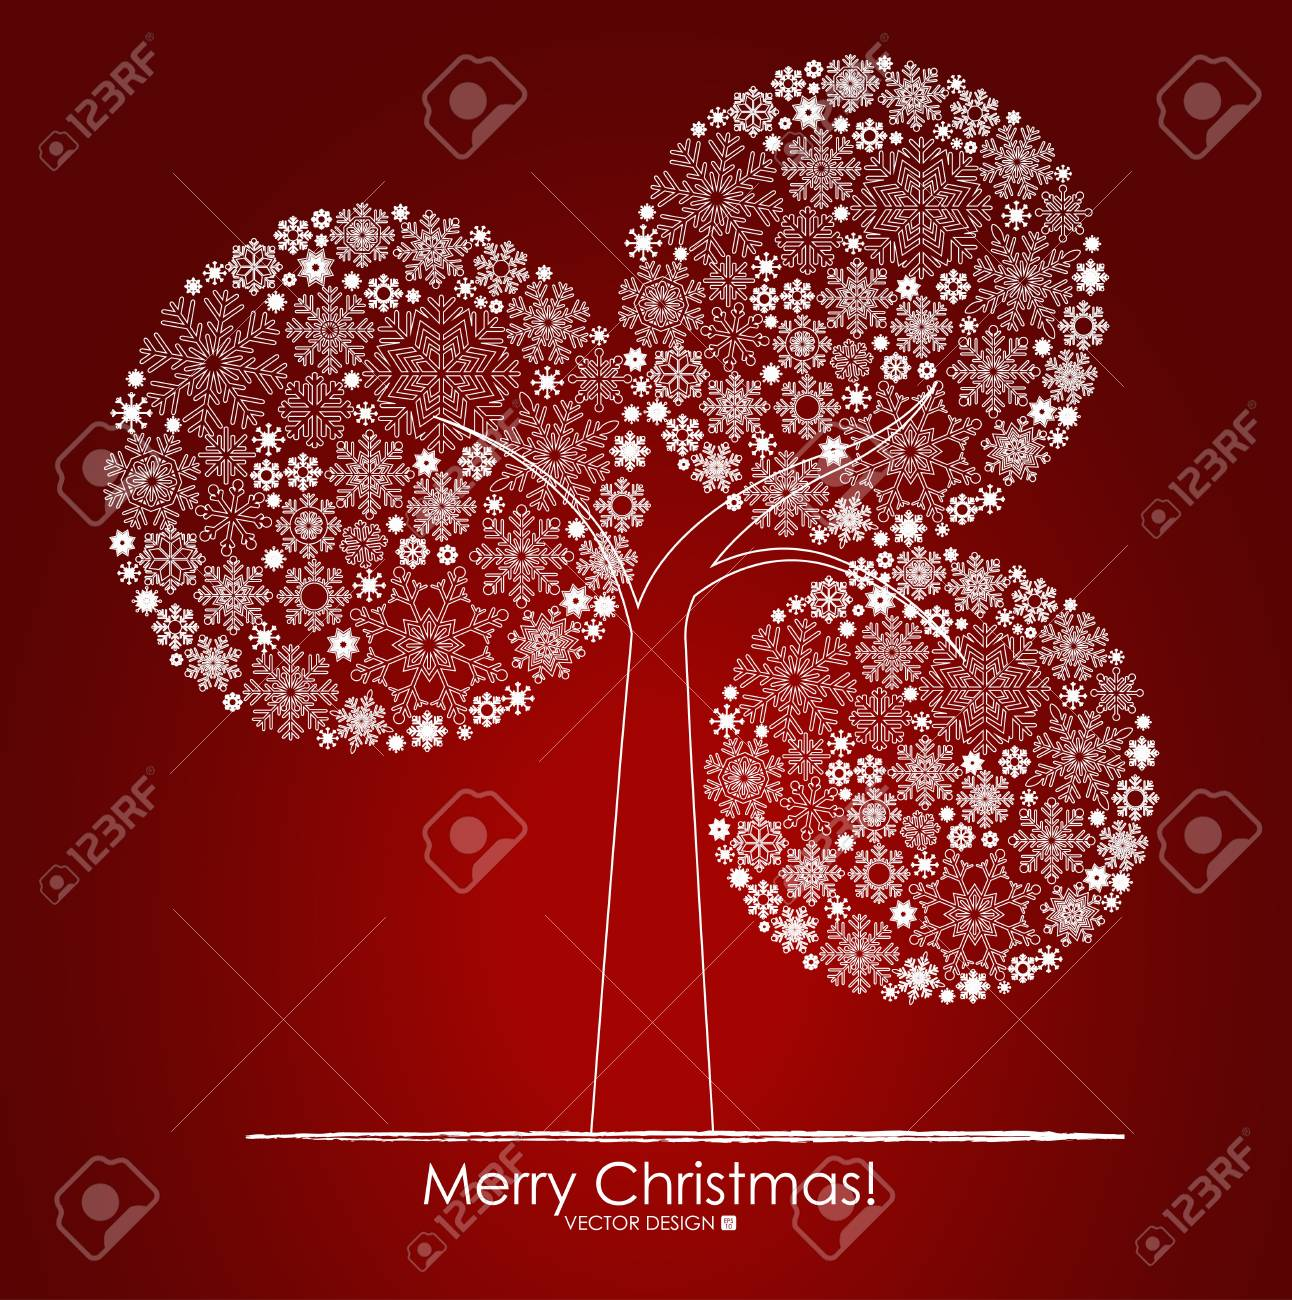 Christmas background with Christmas tree, vector illustration Stock Vector - 16111310